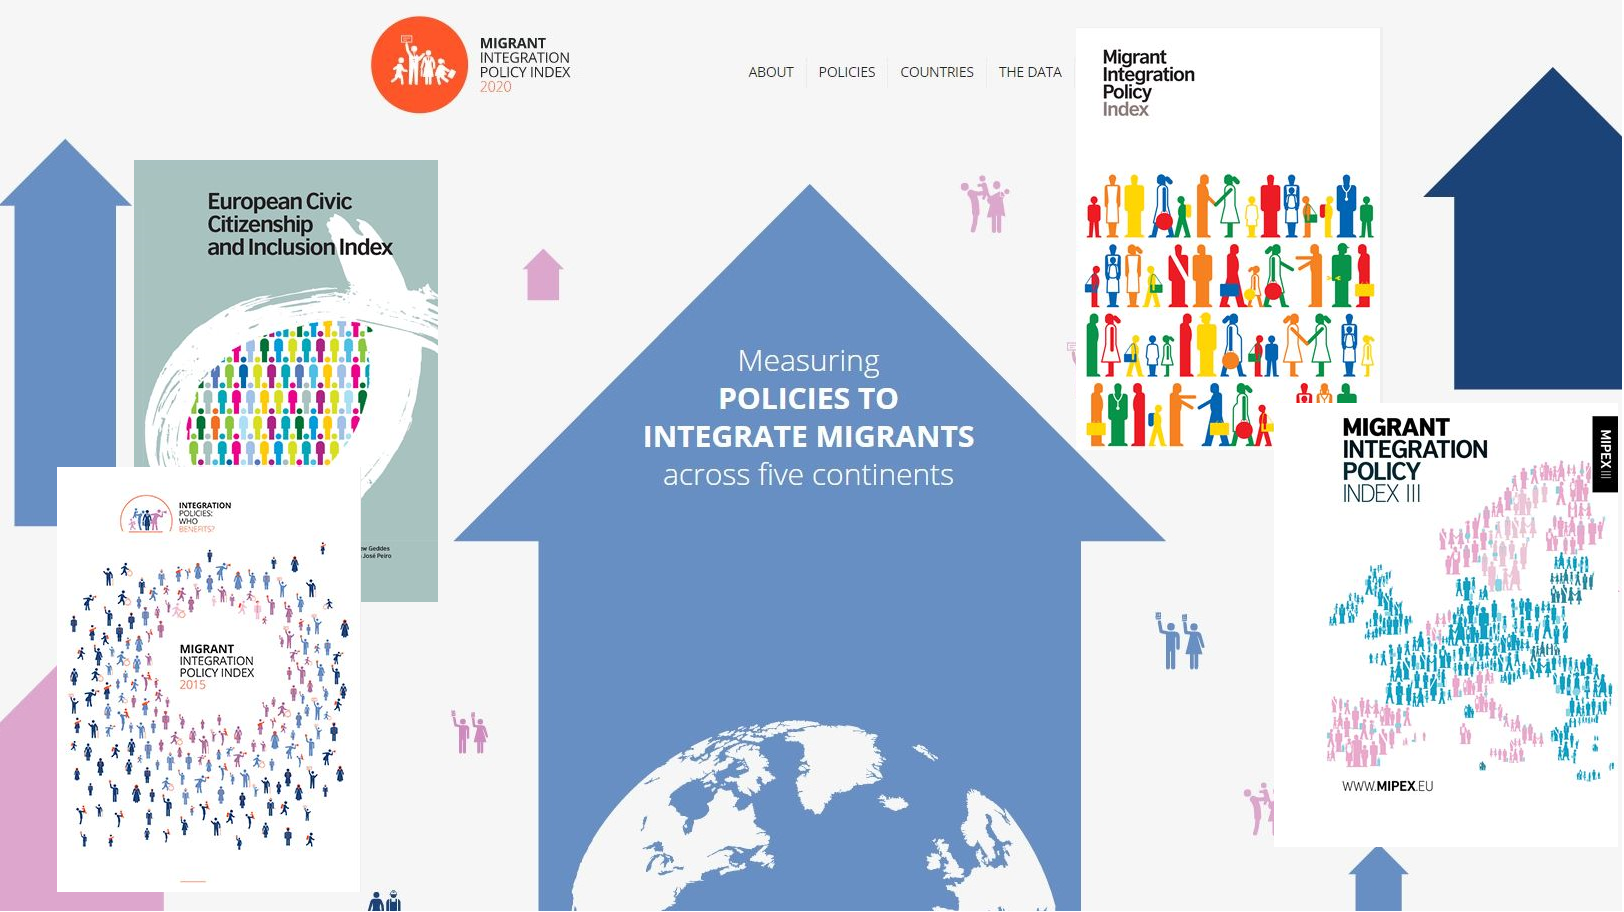 Norway falling on integration index –or is it?